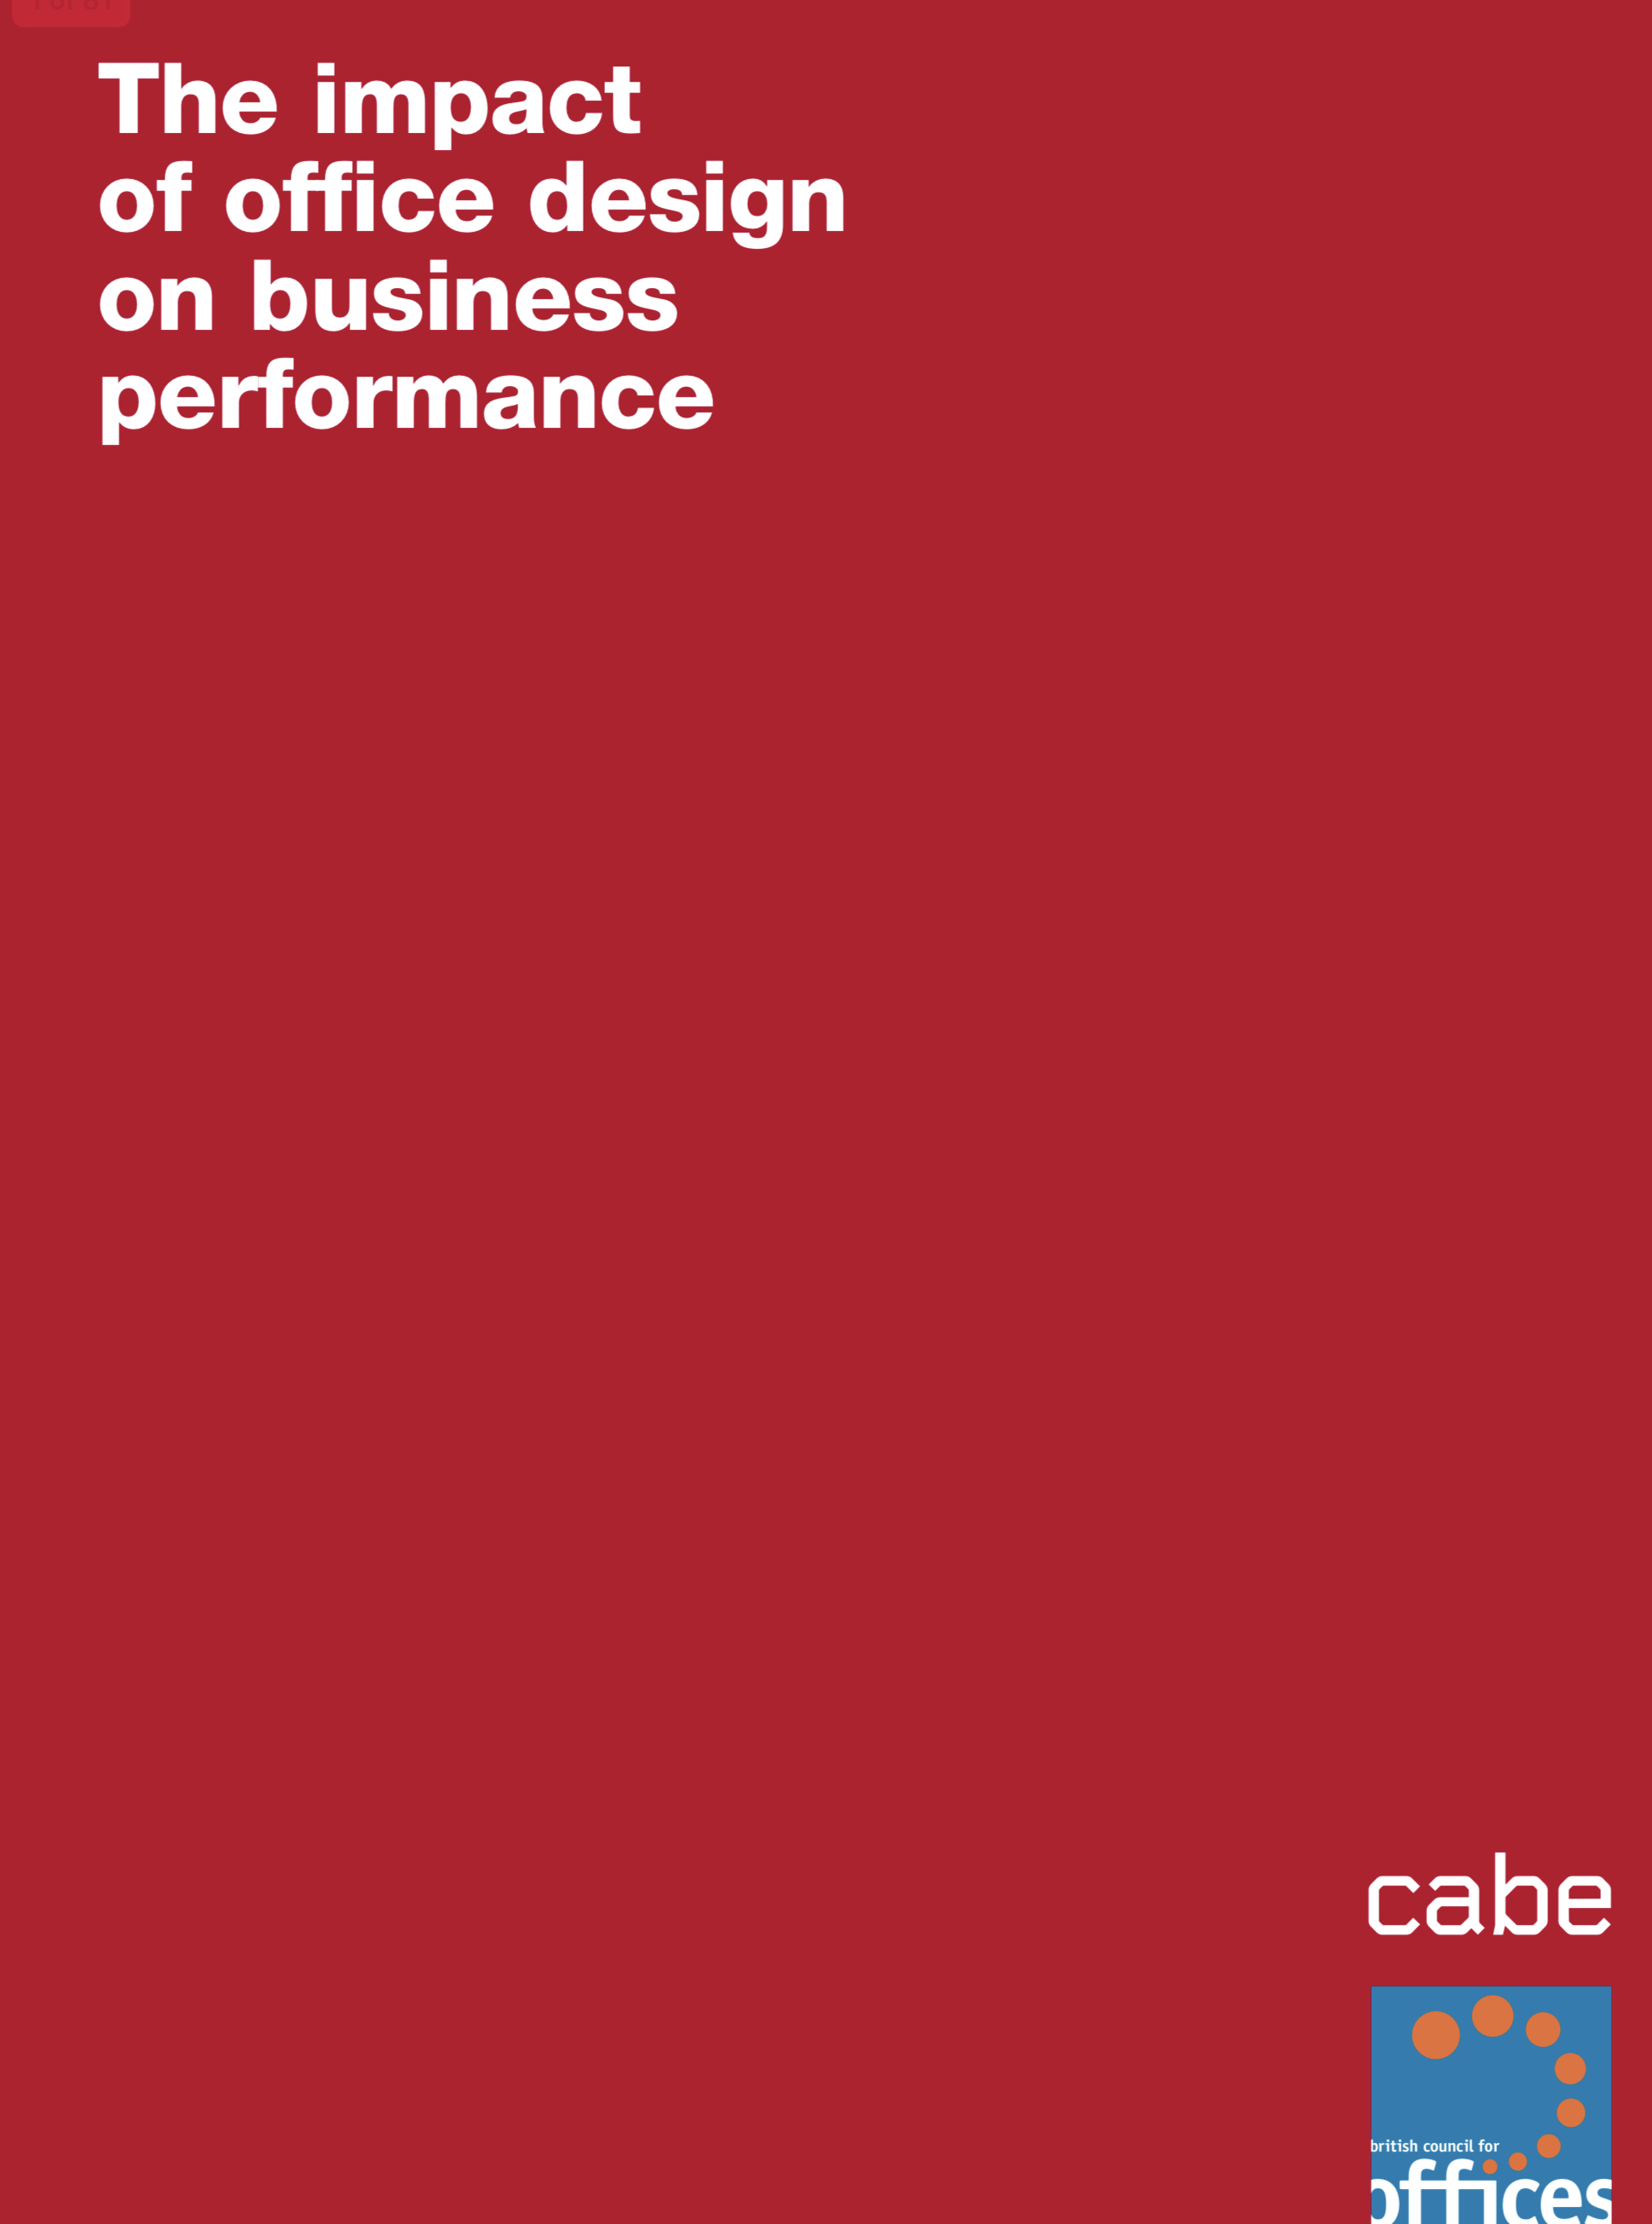 The impact of office design on business performance, CABE, 2005